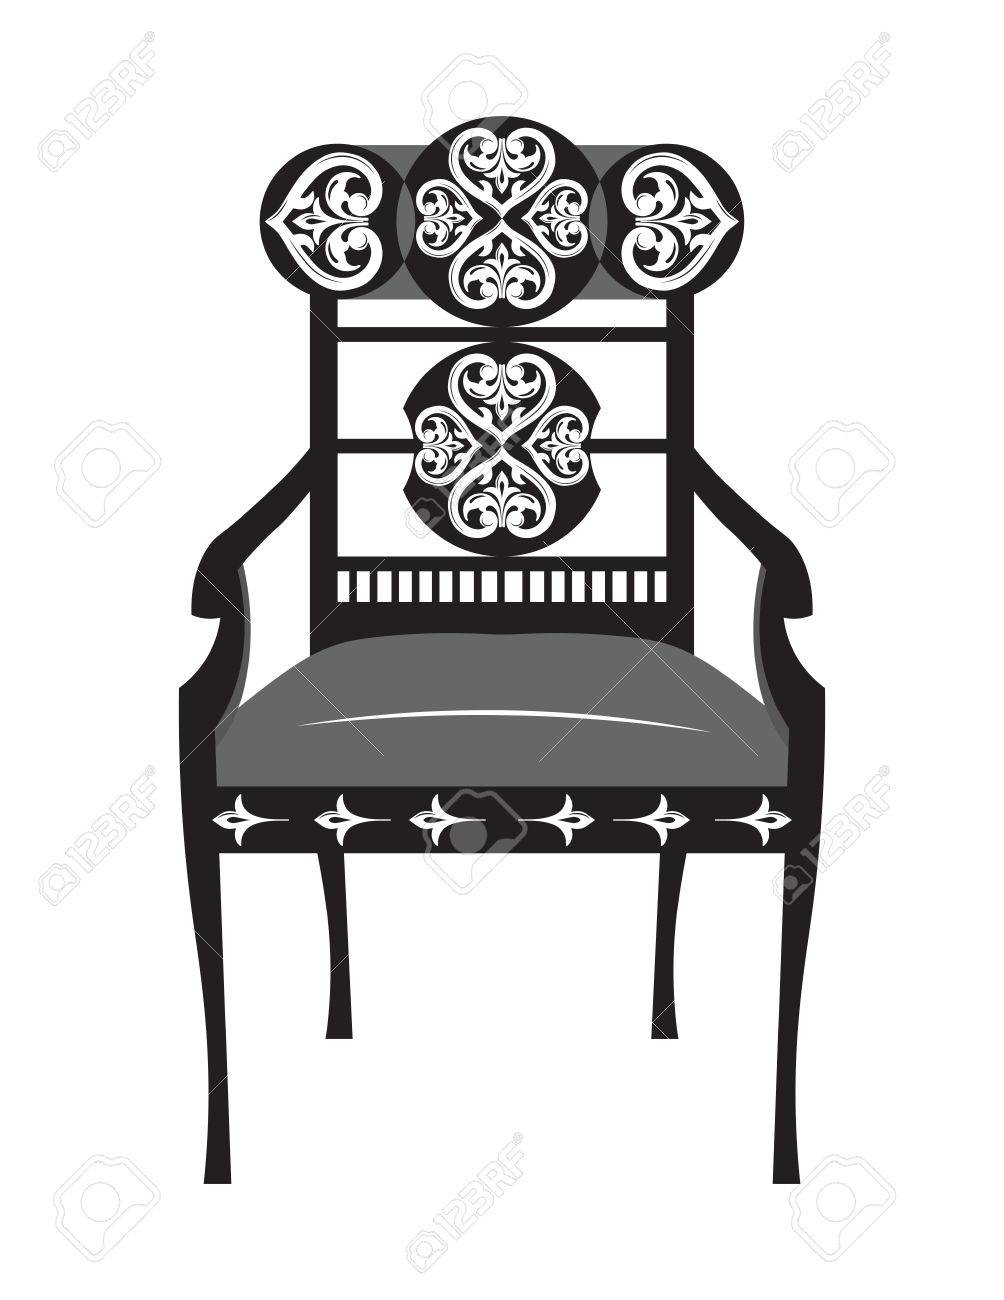 Victorian style furniture chair - Classic Biedermeier Style Furniture Chair Throne With Rich Ornaments English Carved Ornaments Furniture